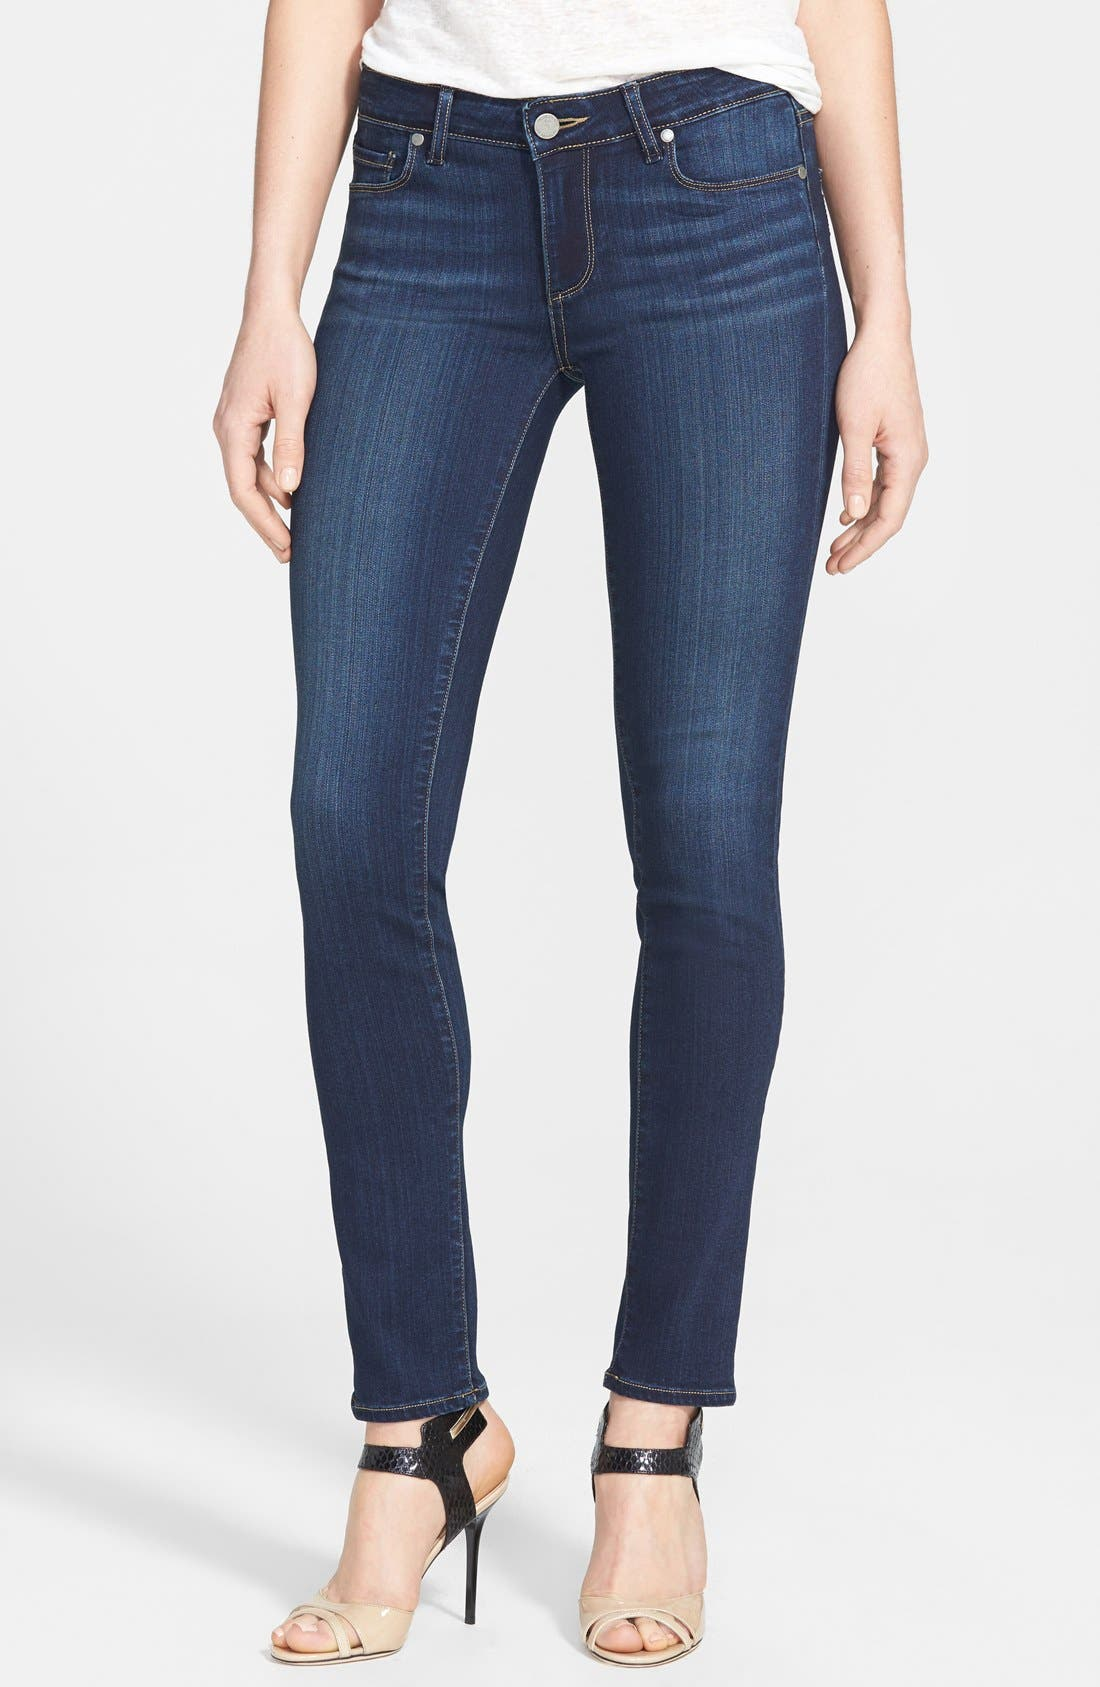 Alternate Image 1 Selected - Paige Denim 'Skyline' Skinny Jeans (Nottingham)